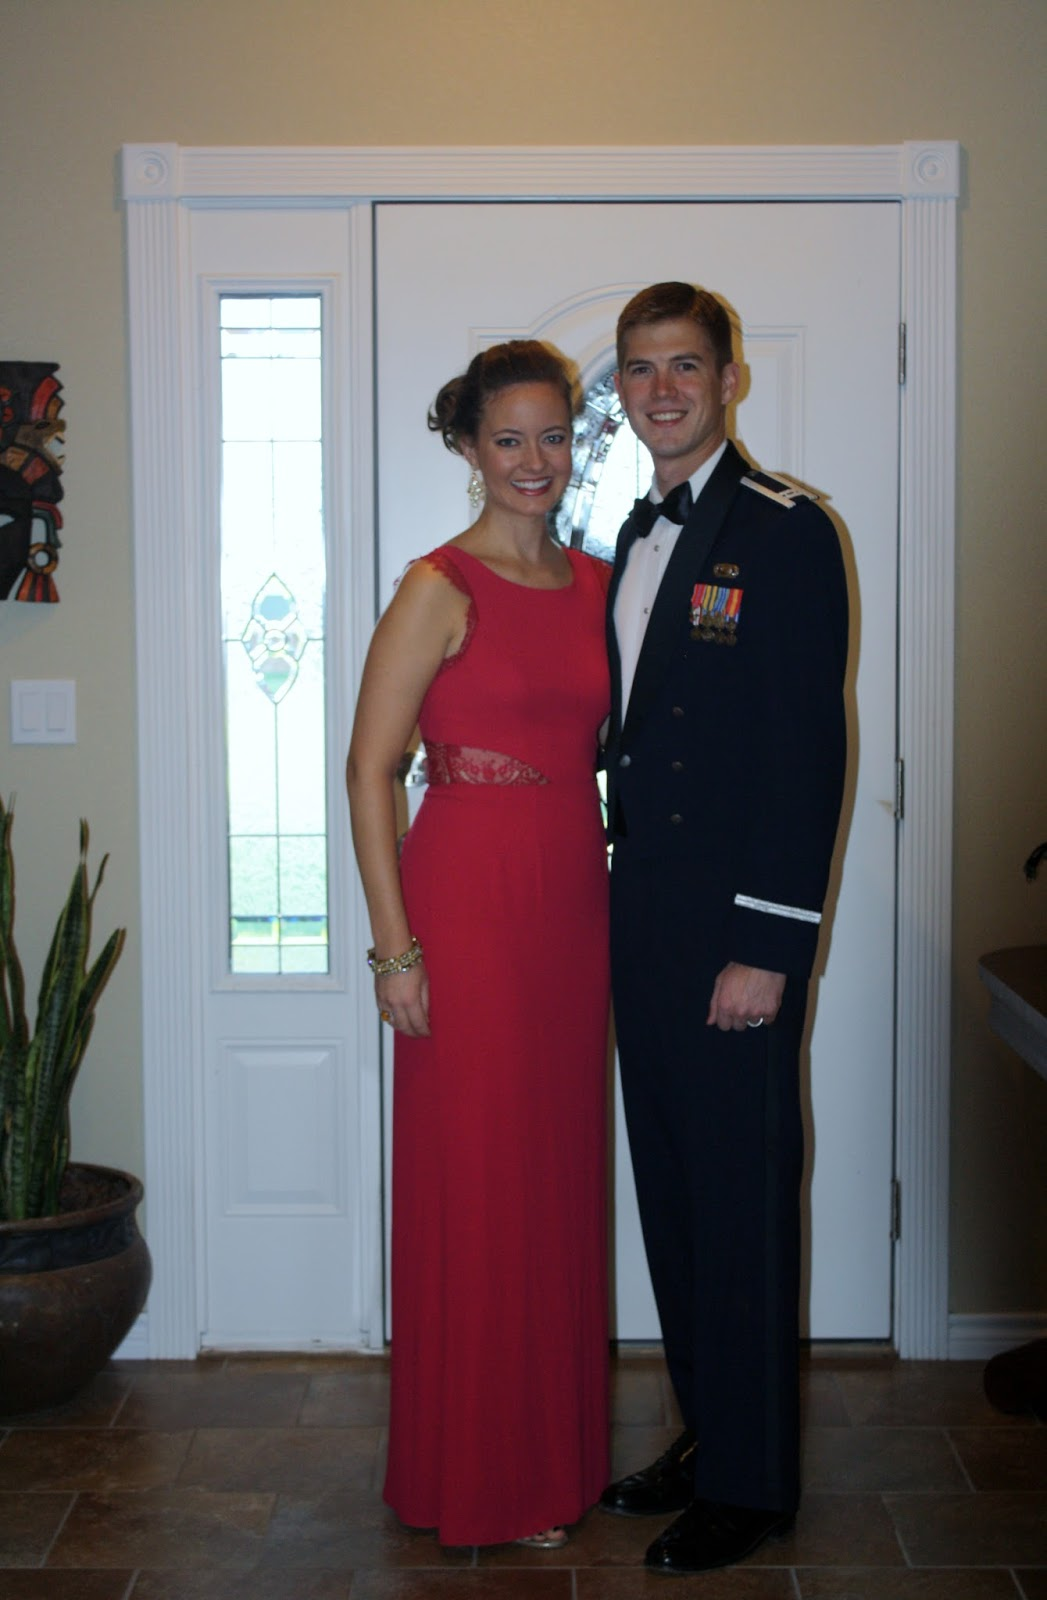 Air Force Ball Dresses_Other dresses_dressesss